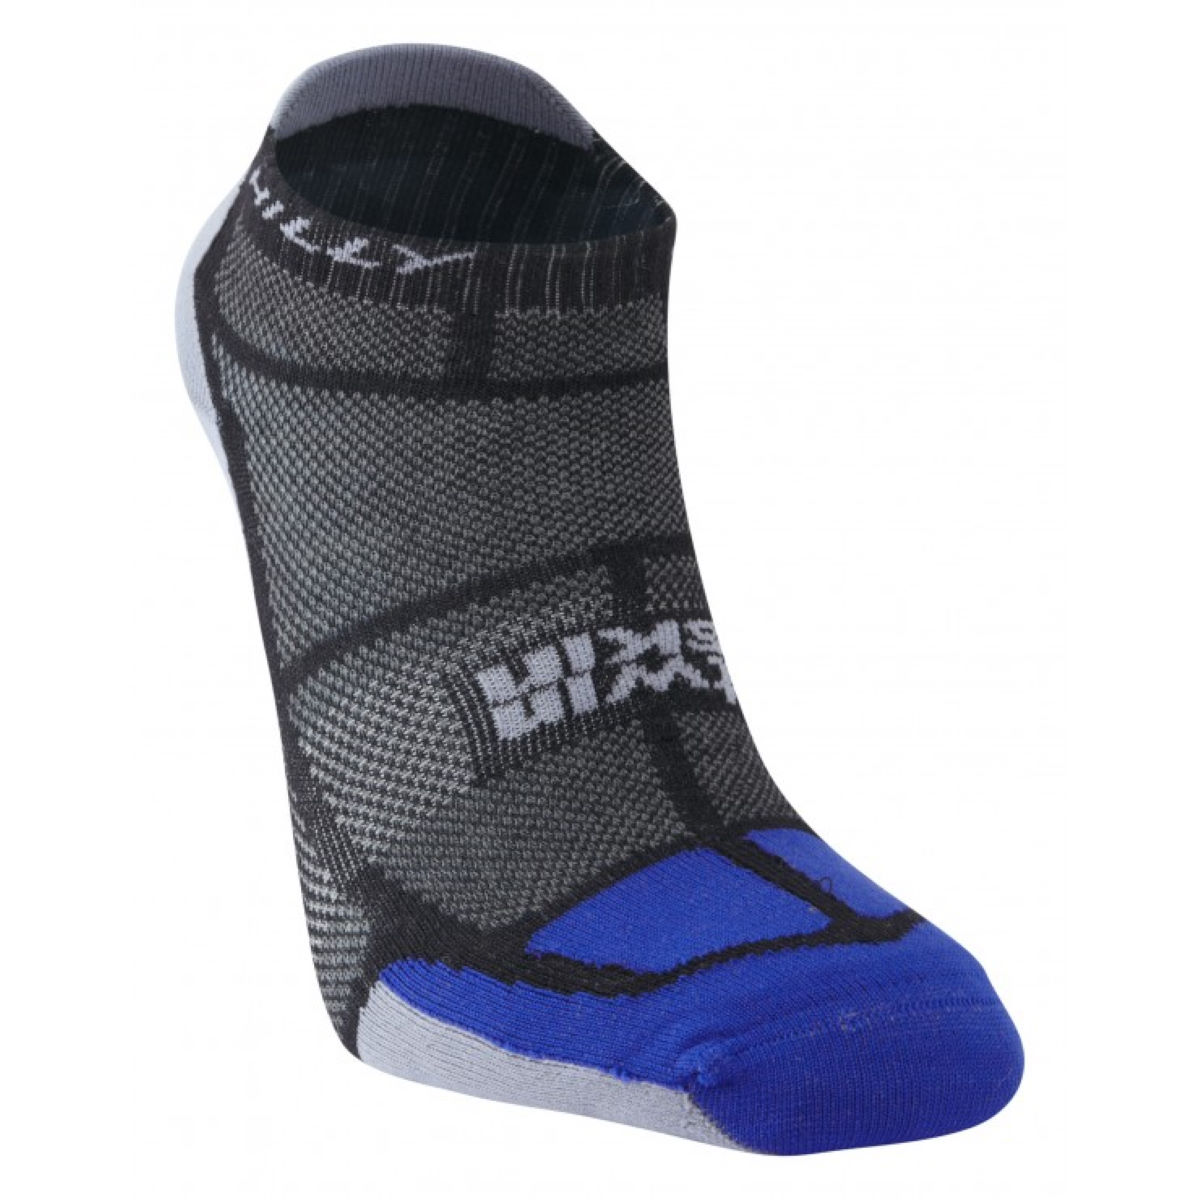 Chaussettes Hilly TwinSkin - L Black/Blue/Grey  Chaussettes